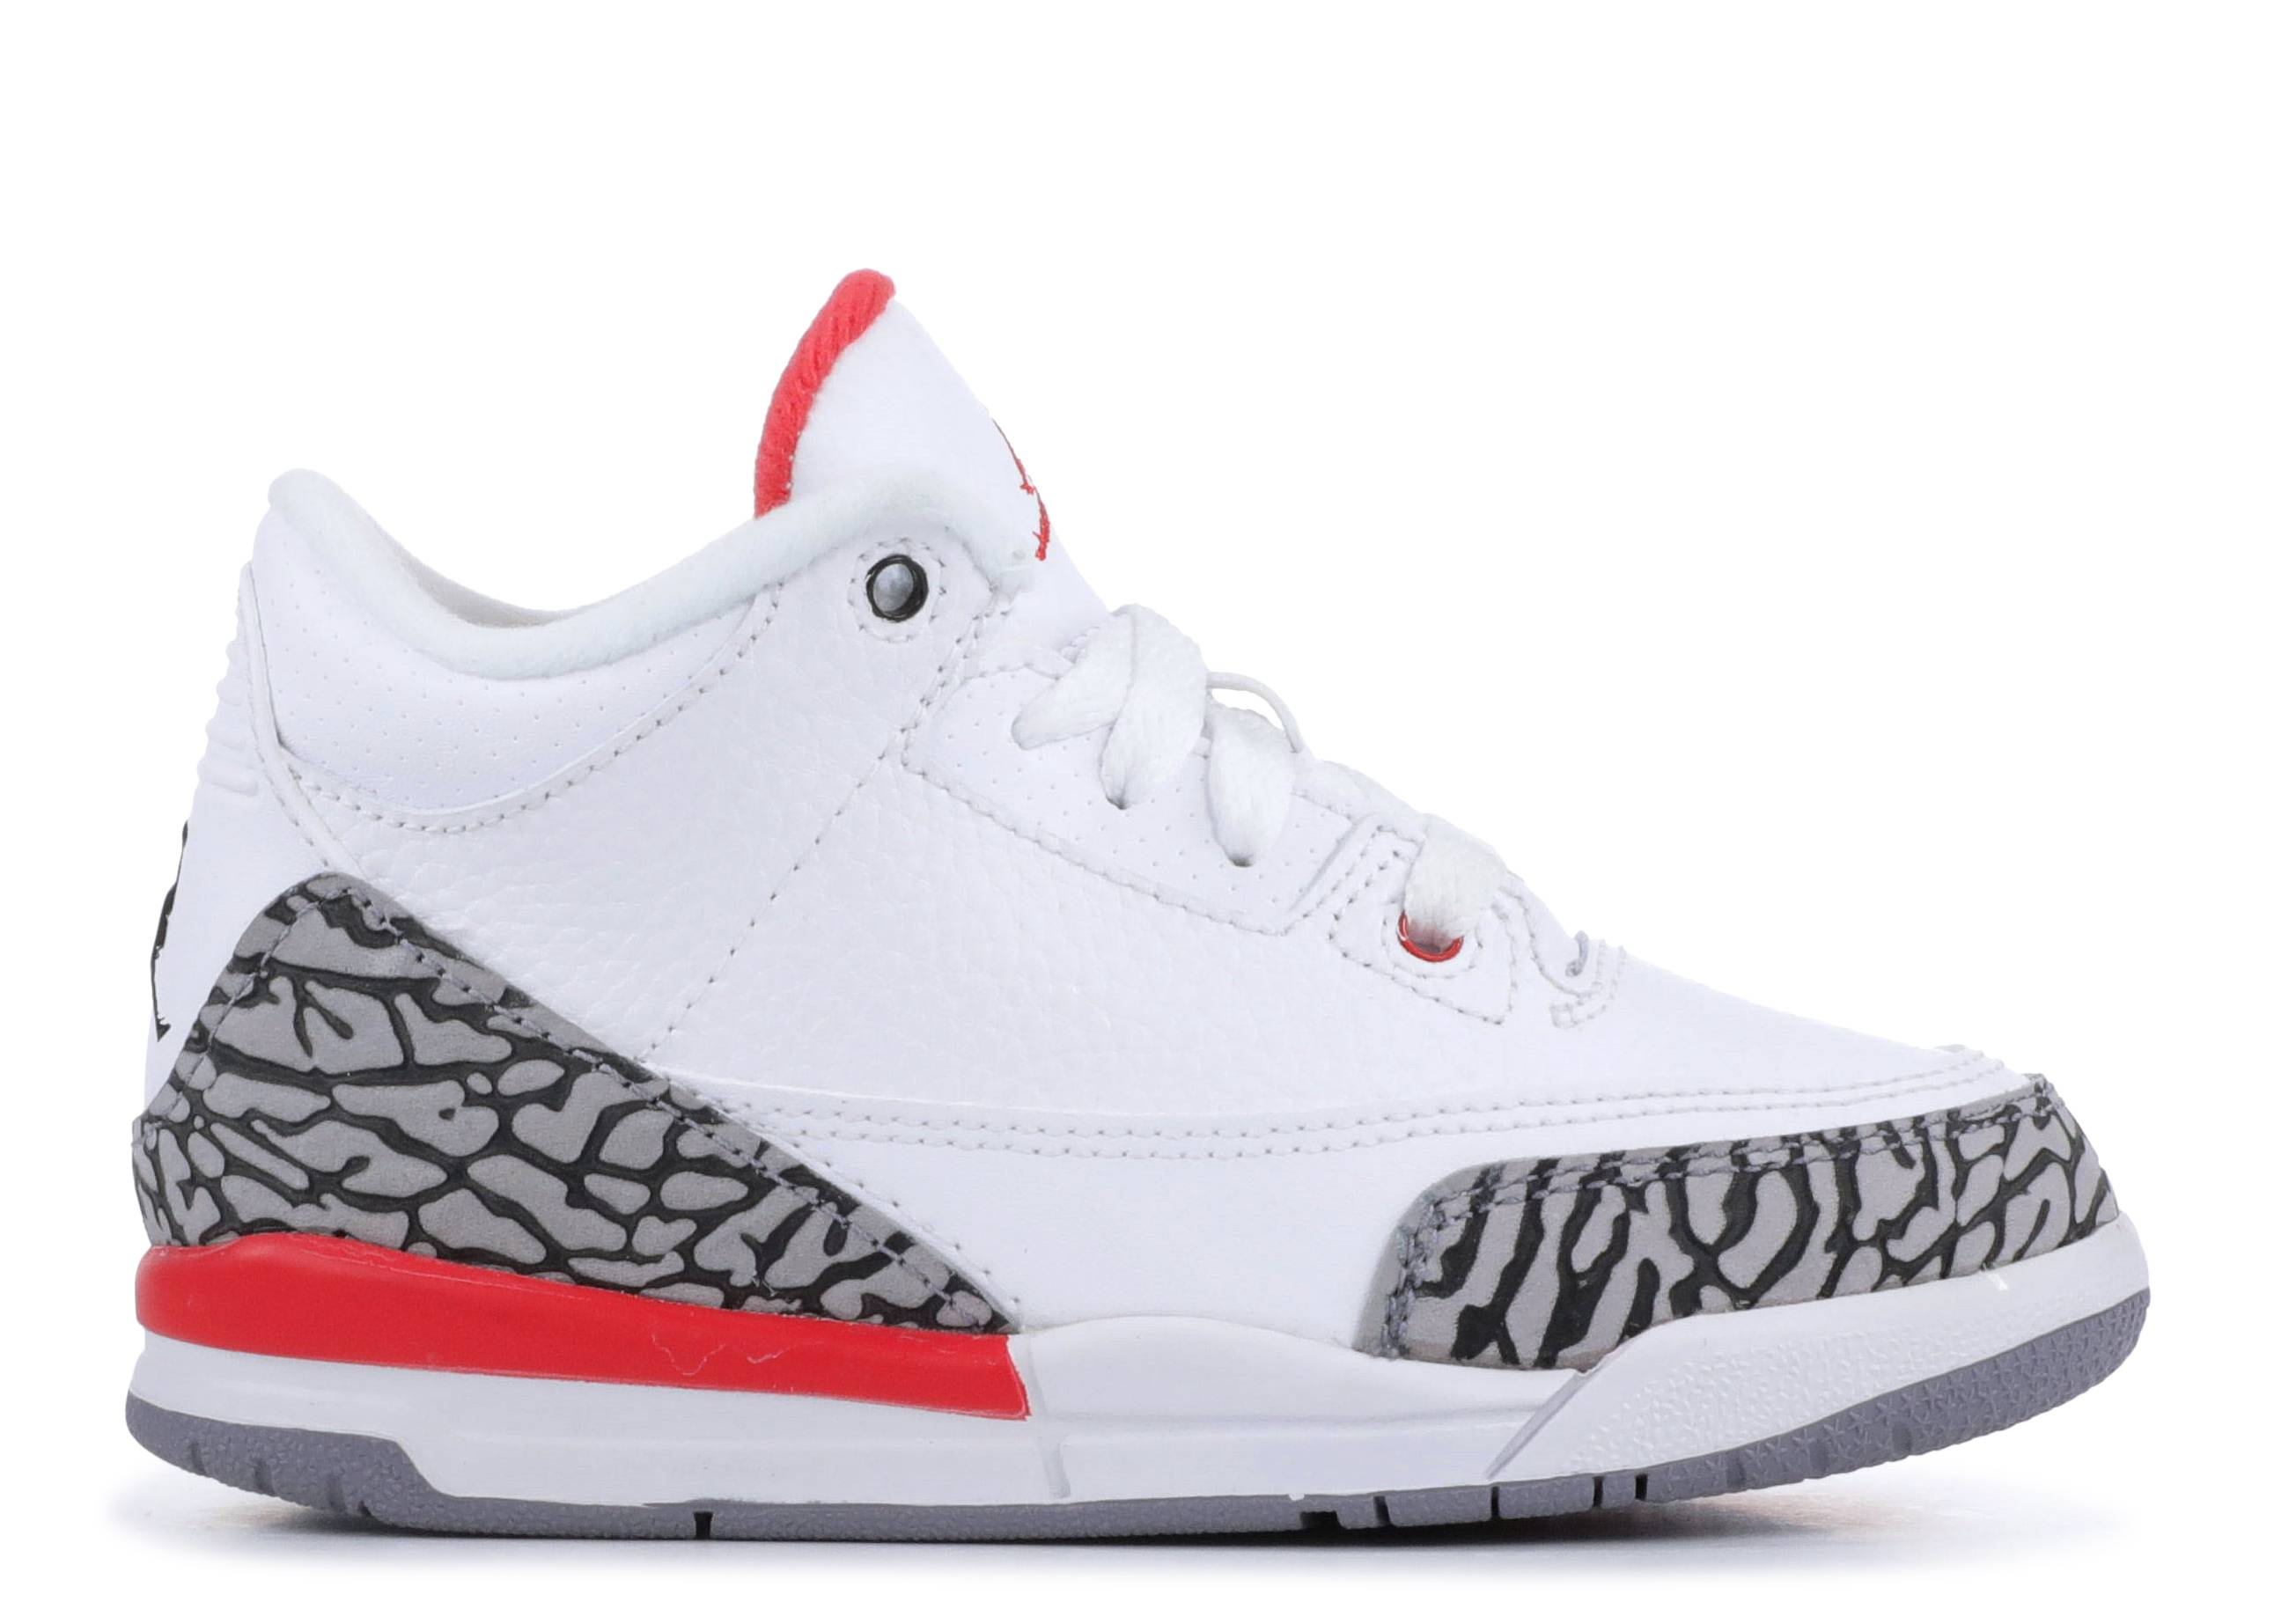 low priced d7690 2aaf2 Air Jordan 3 (III) Shoes - Nike | Flight Club